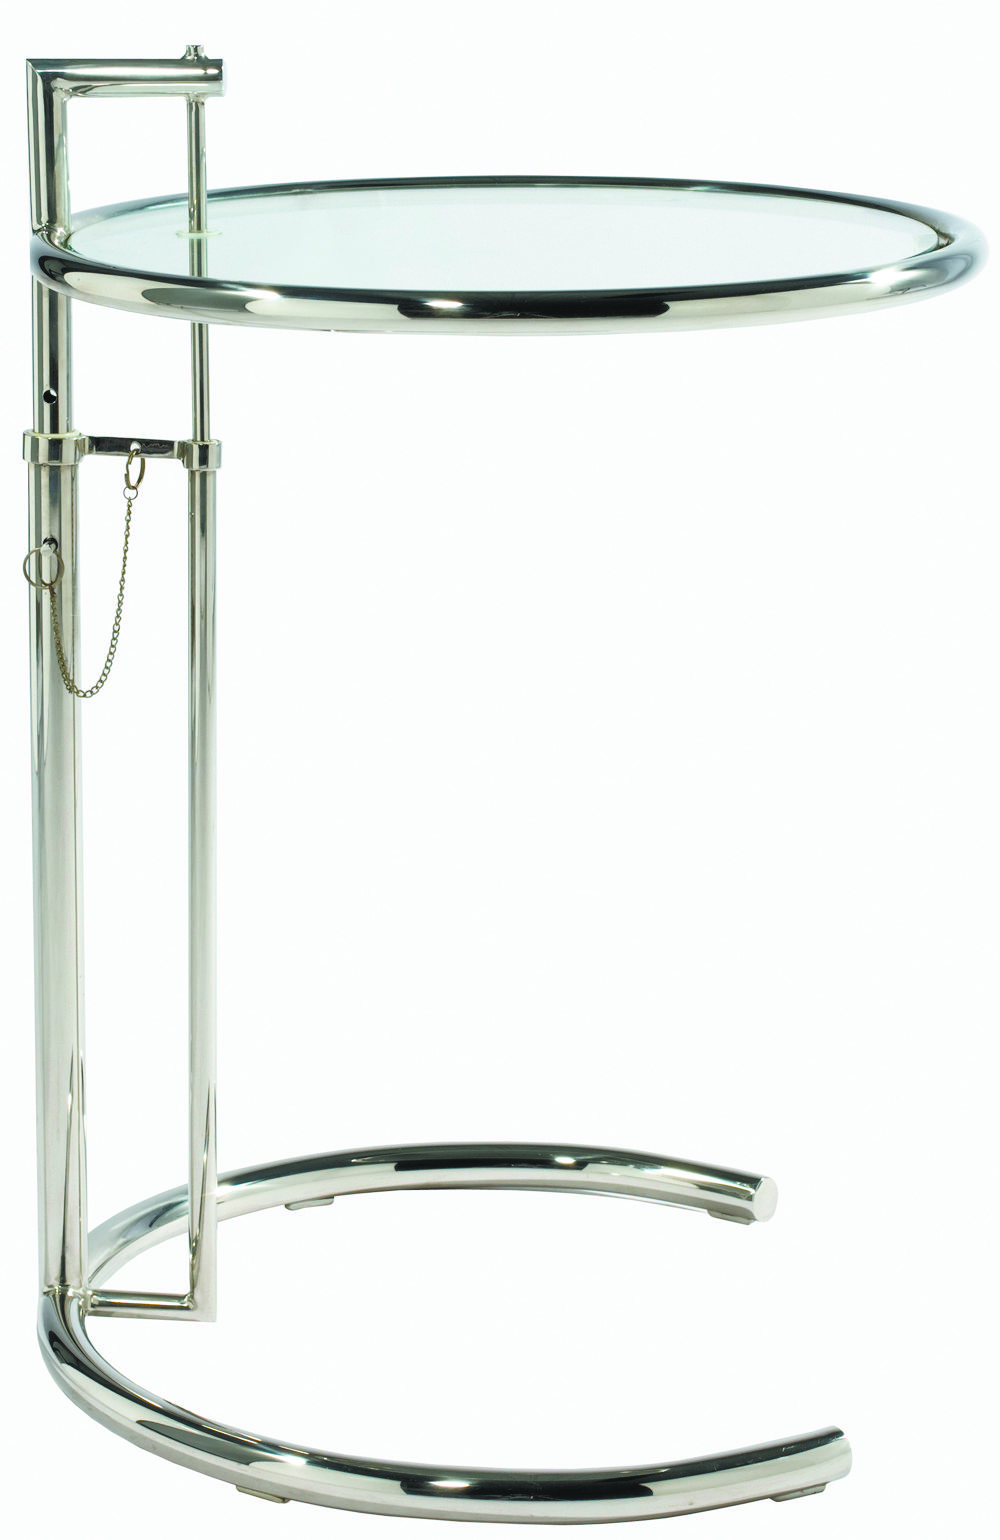 Eileen Gray Tisch replica eileen gray adjustable cigarette table deluxe version